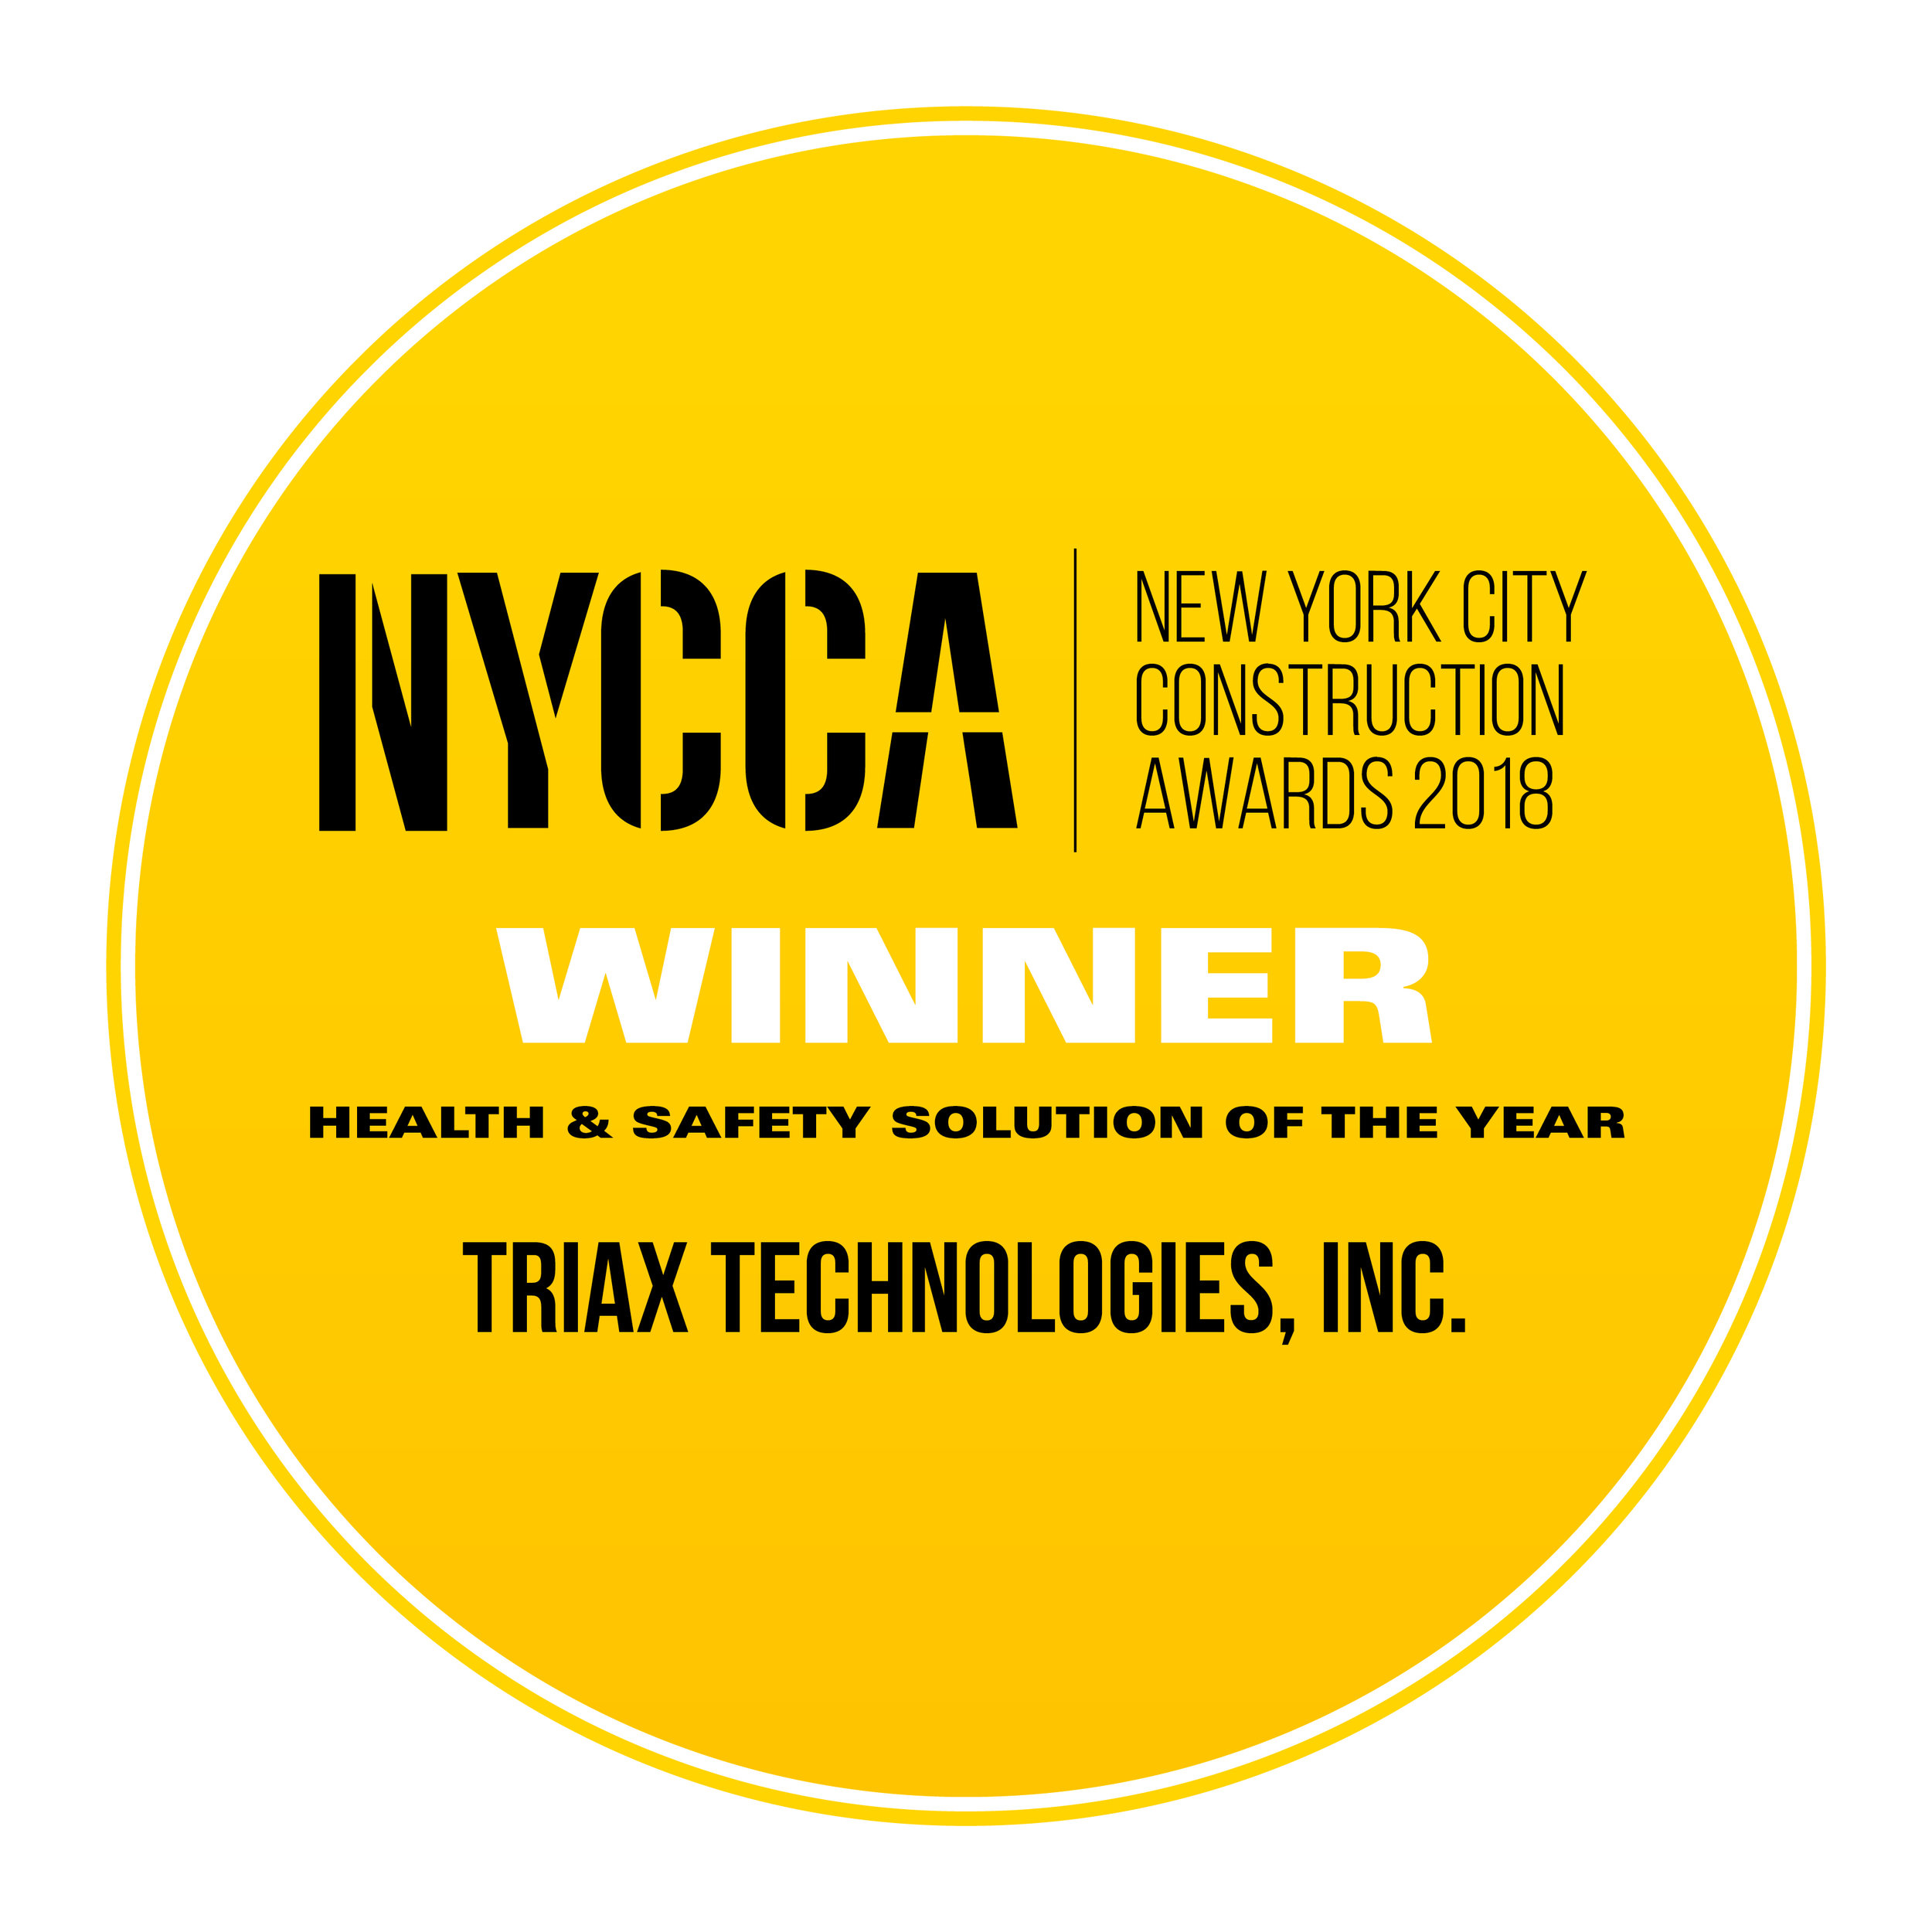 Triax Technologies, Inc. - Health & Safety Solution of the Year